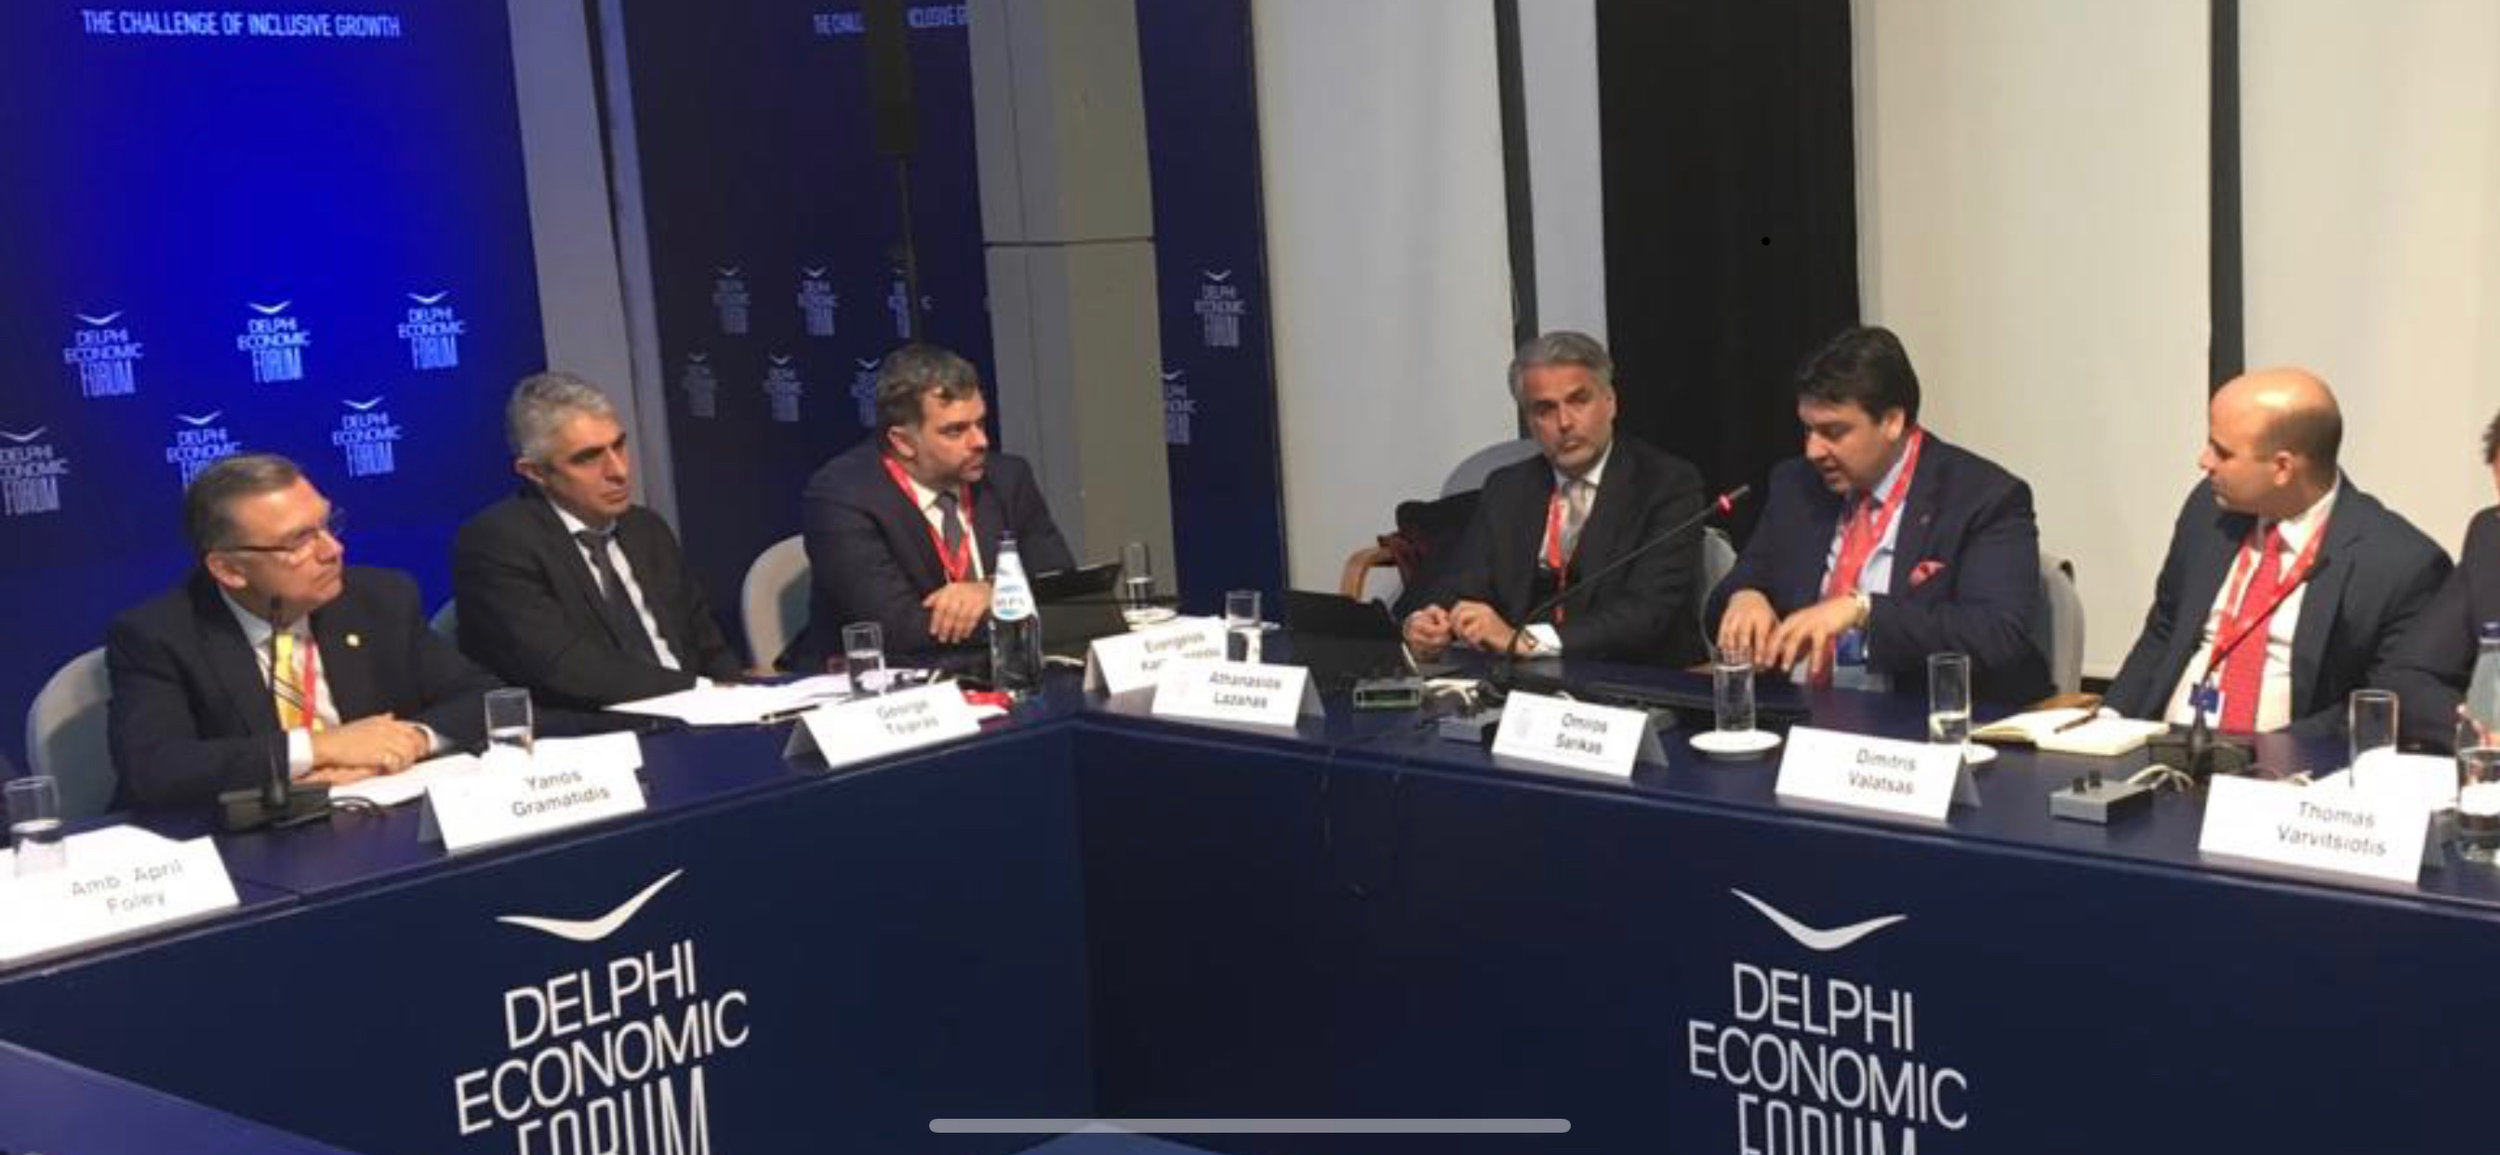 Omiros Sarikas at Delphi Economic Forum.jpeg